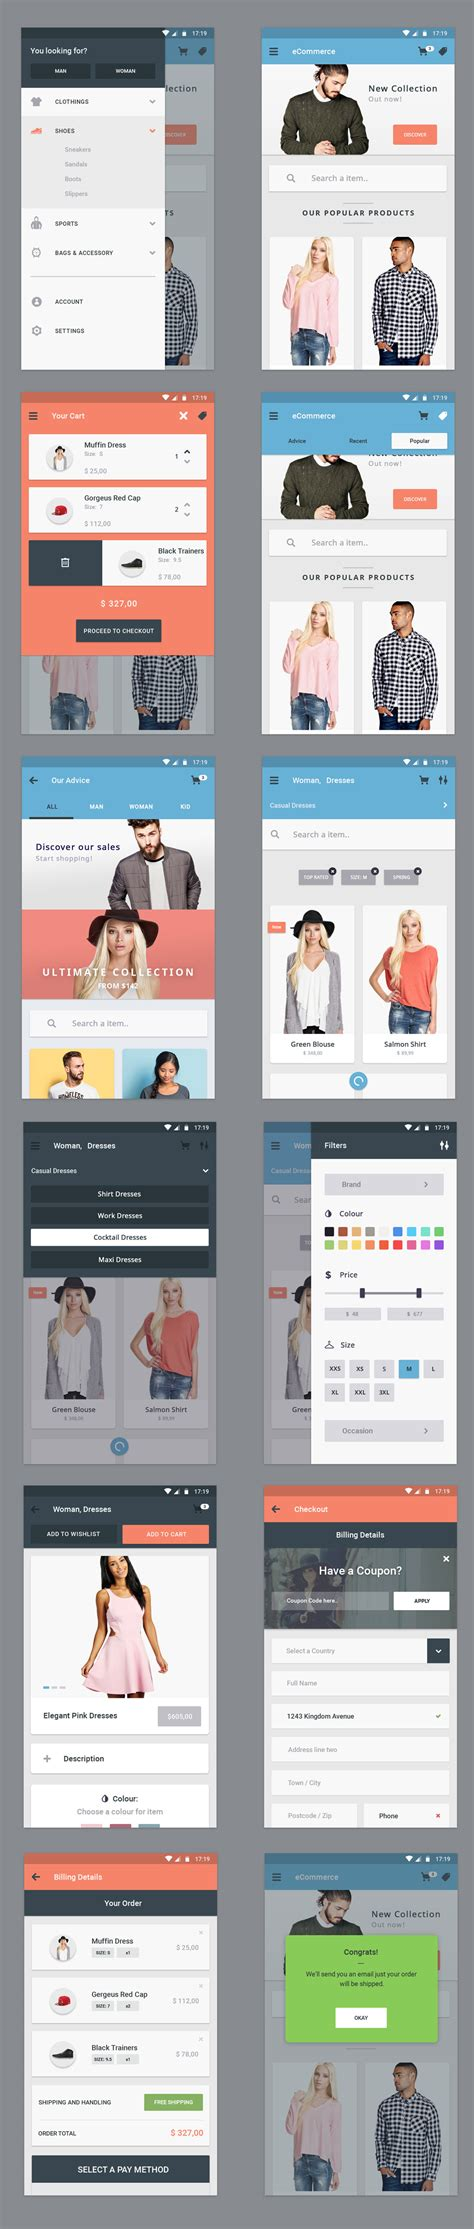 home screen design inspiration free ecommerce app ui designs graphicsfuel